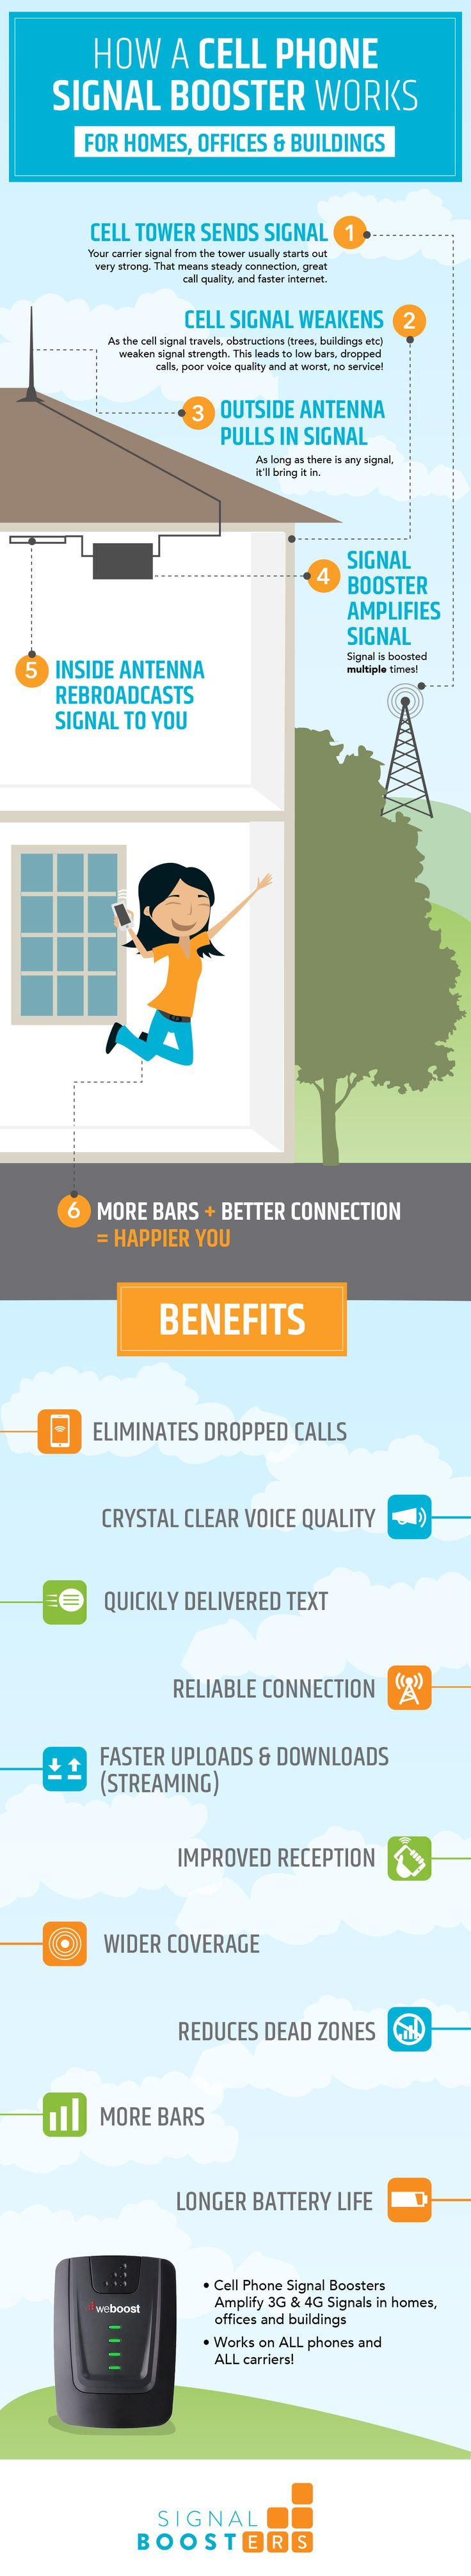 The 2nd Best Way to Get Better Cell Phone Signals in Your Home or Building #infographic #MobileDevices #Technology #Internet